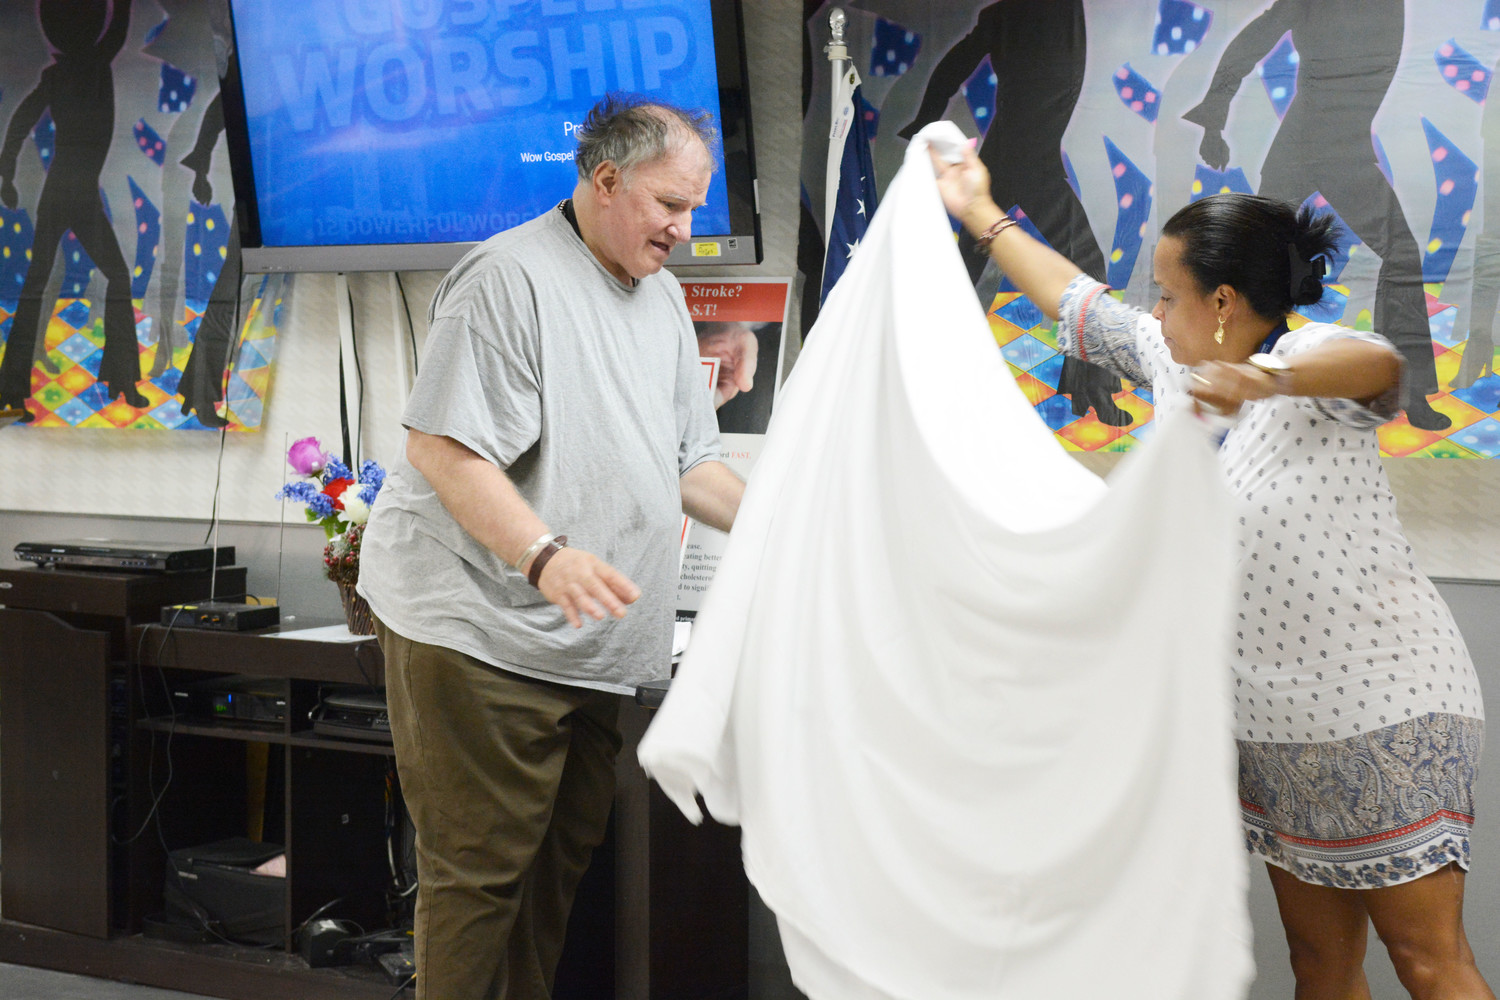 Donald Baumgaertner, a resident of East Haven Nursing and Rehabilitation Center, the Bronx, assists Bernadette Dubois, recreation leader at East Haven, with an altar cloth in preparing the center for Mass Aug. 24.